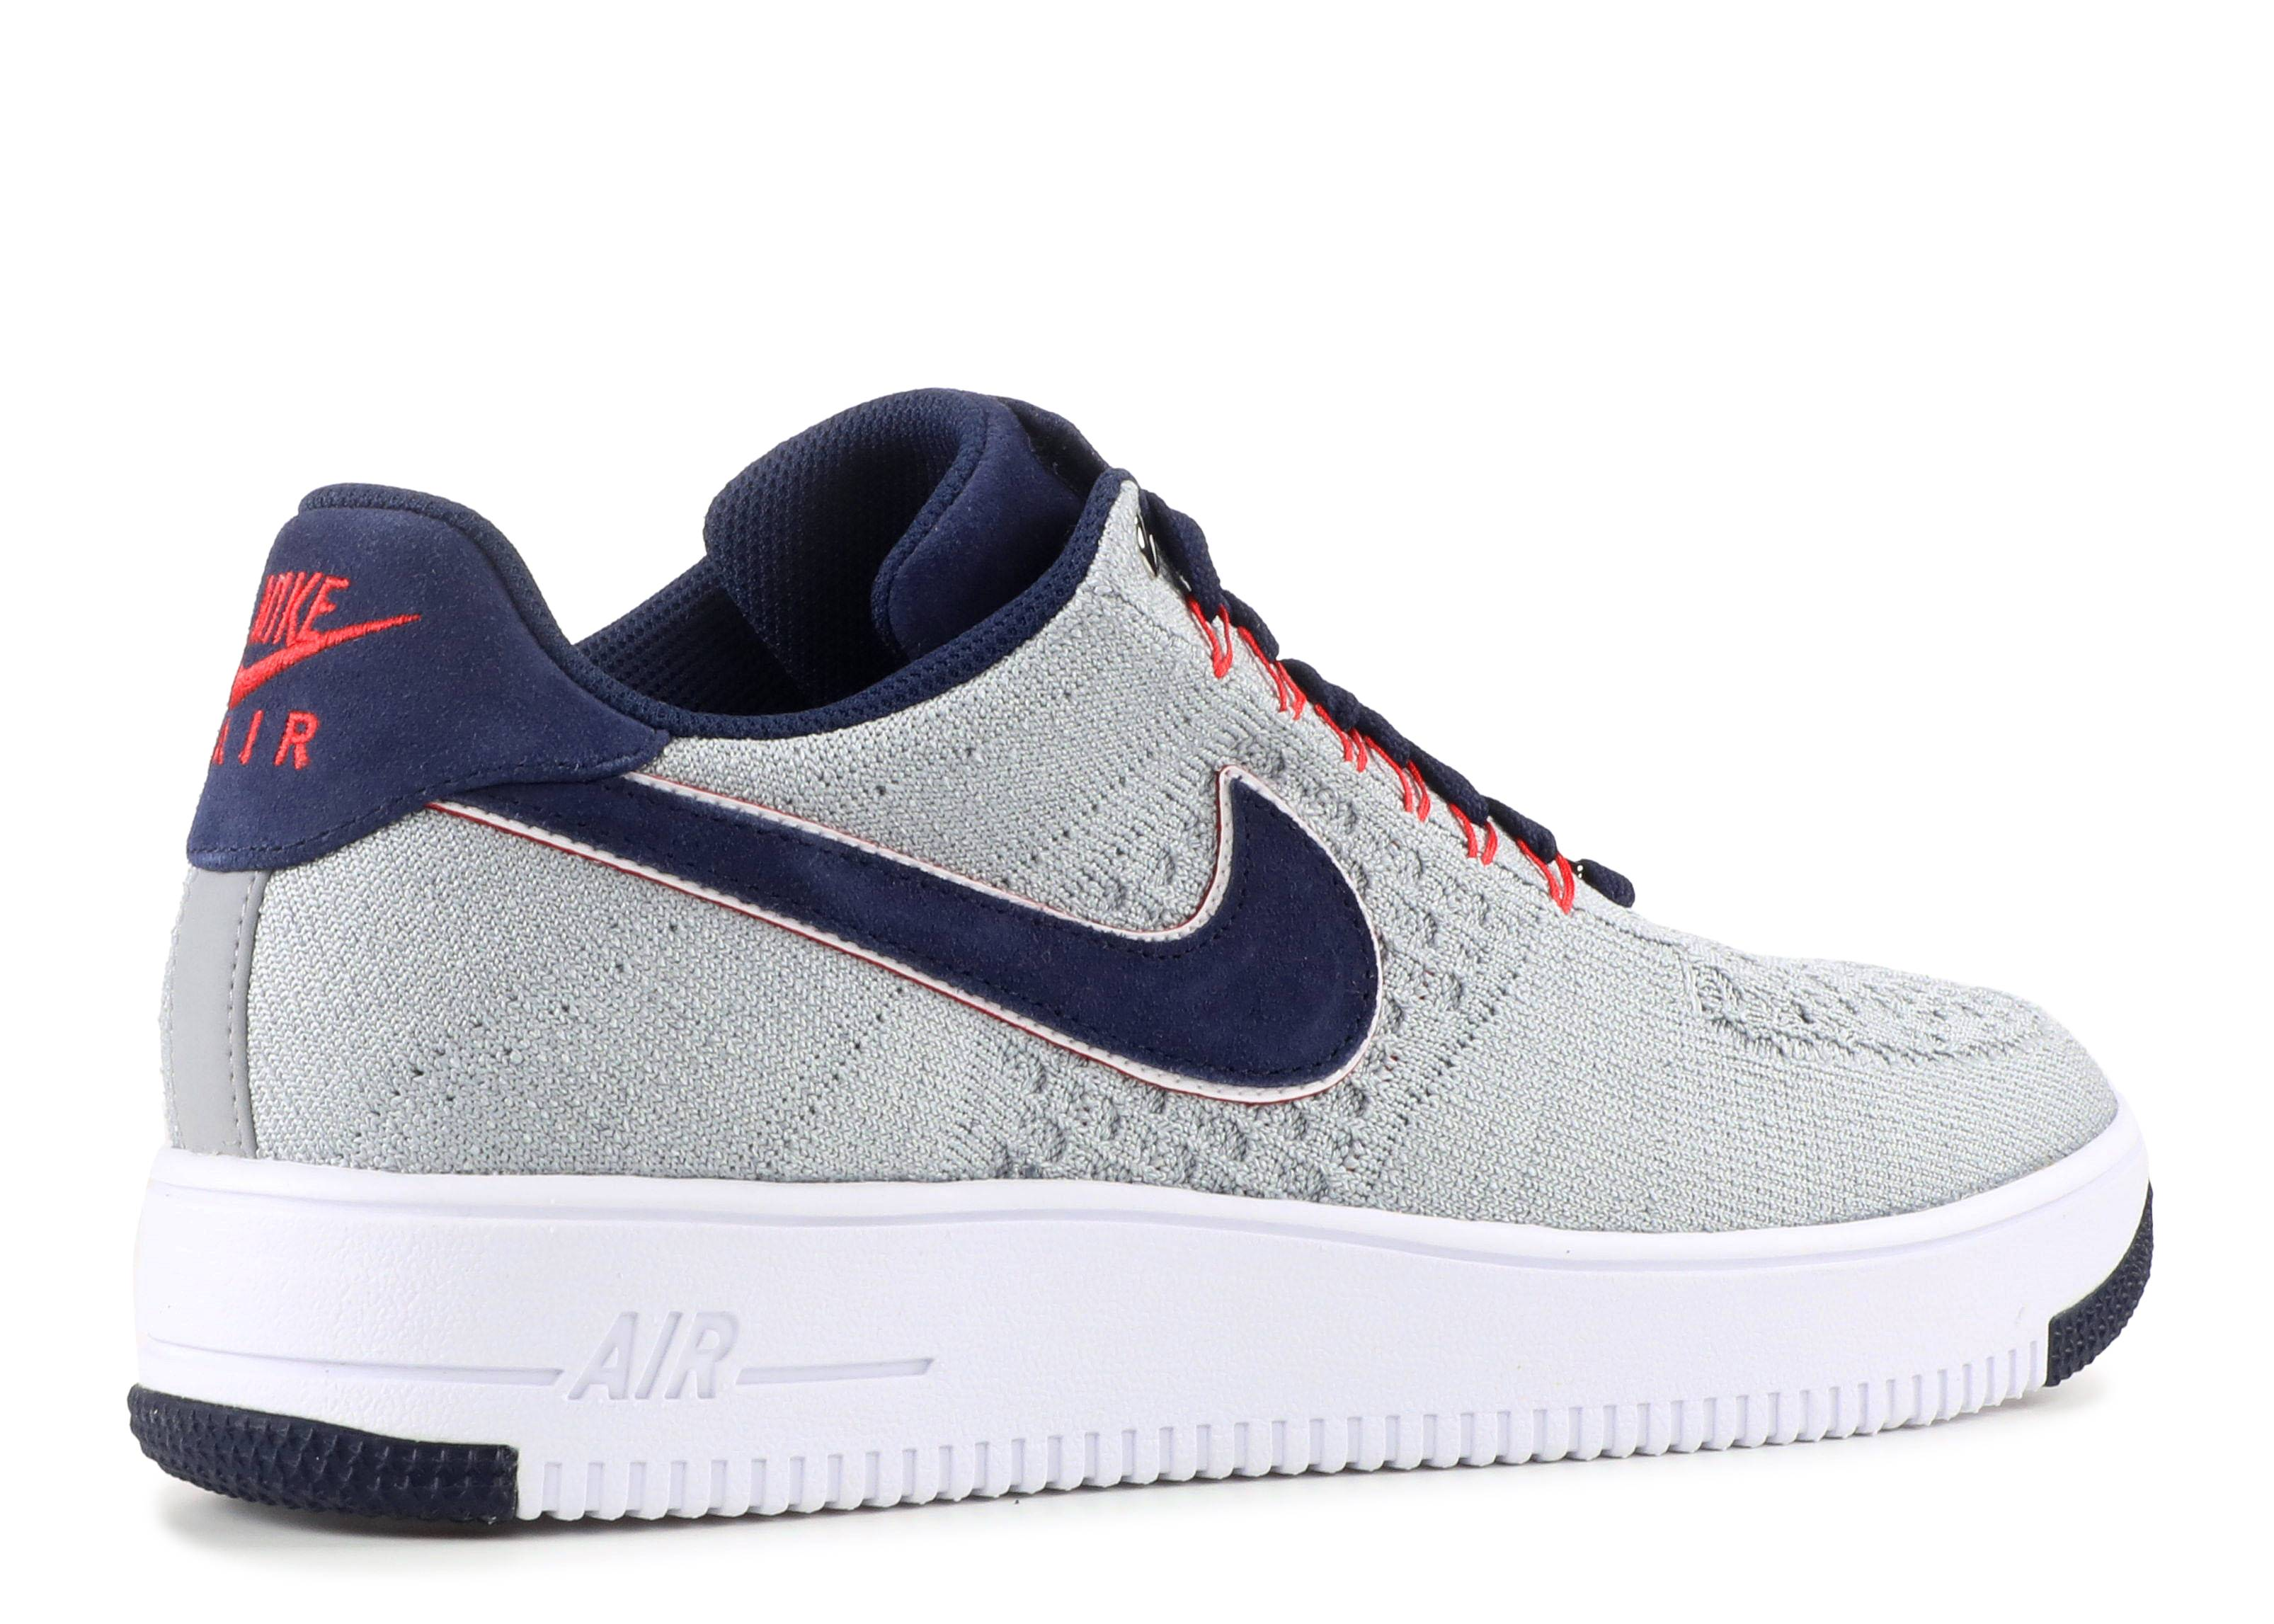 8aabfb5710fa Af1 Ultra Flyknit Low Rkk